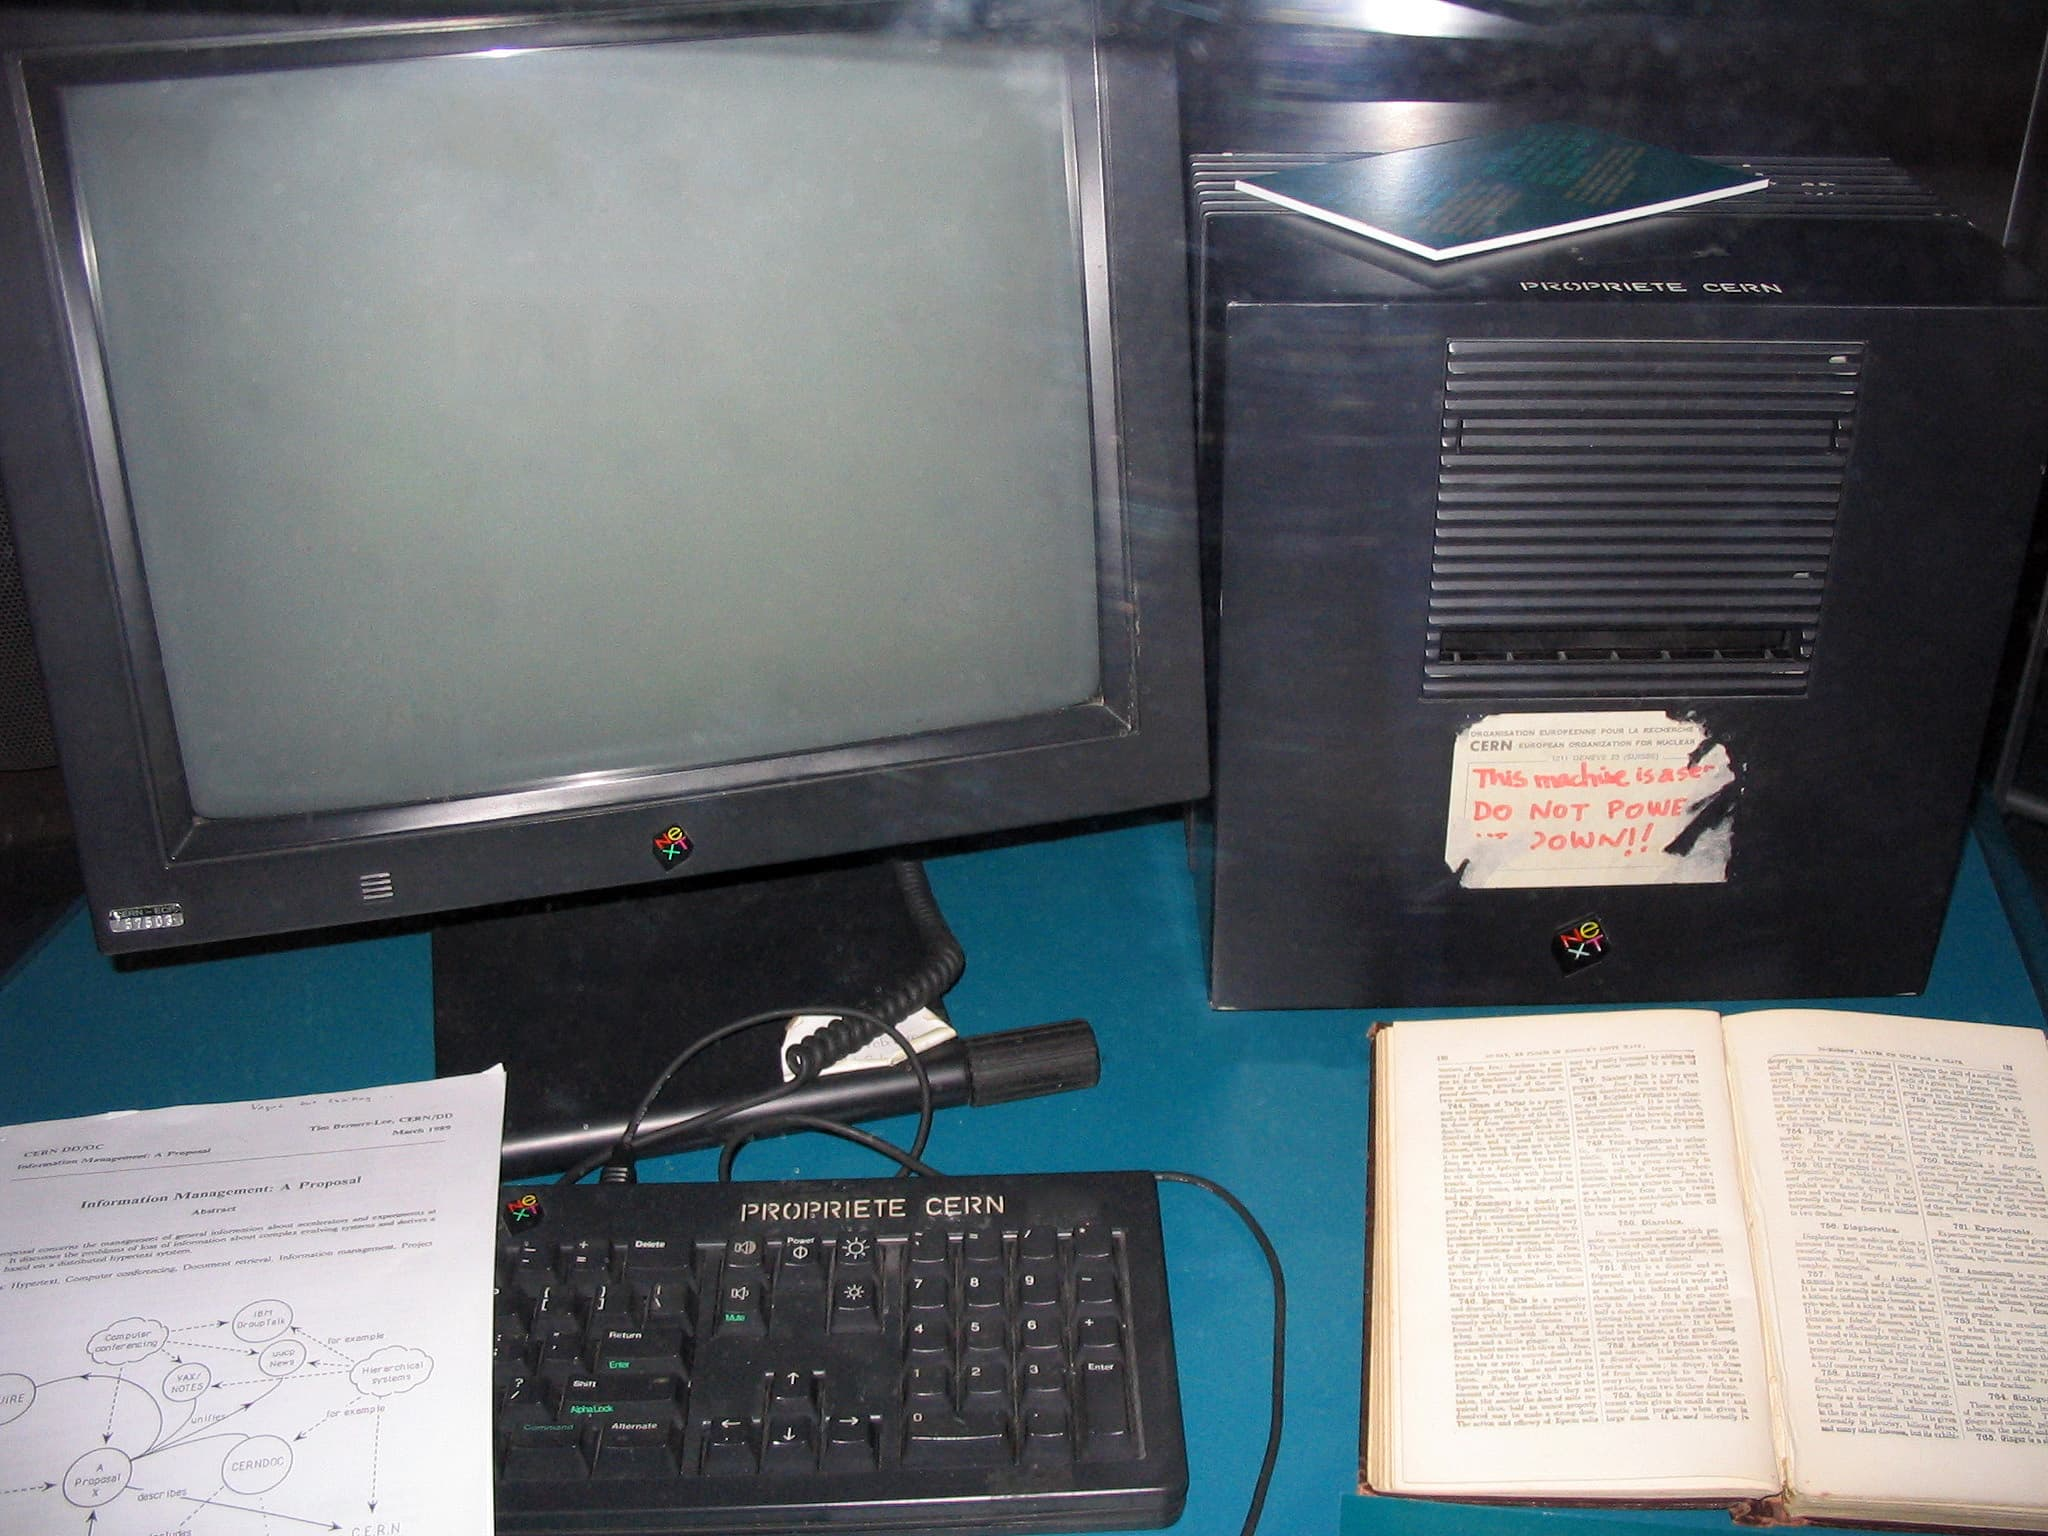 The first web server, at CERN in Geneva